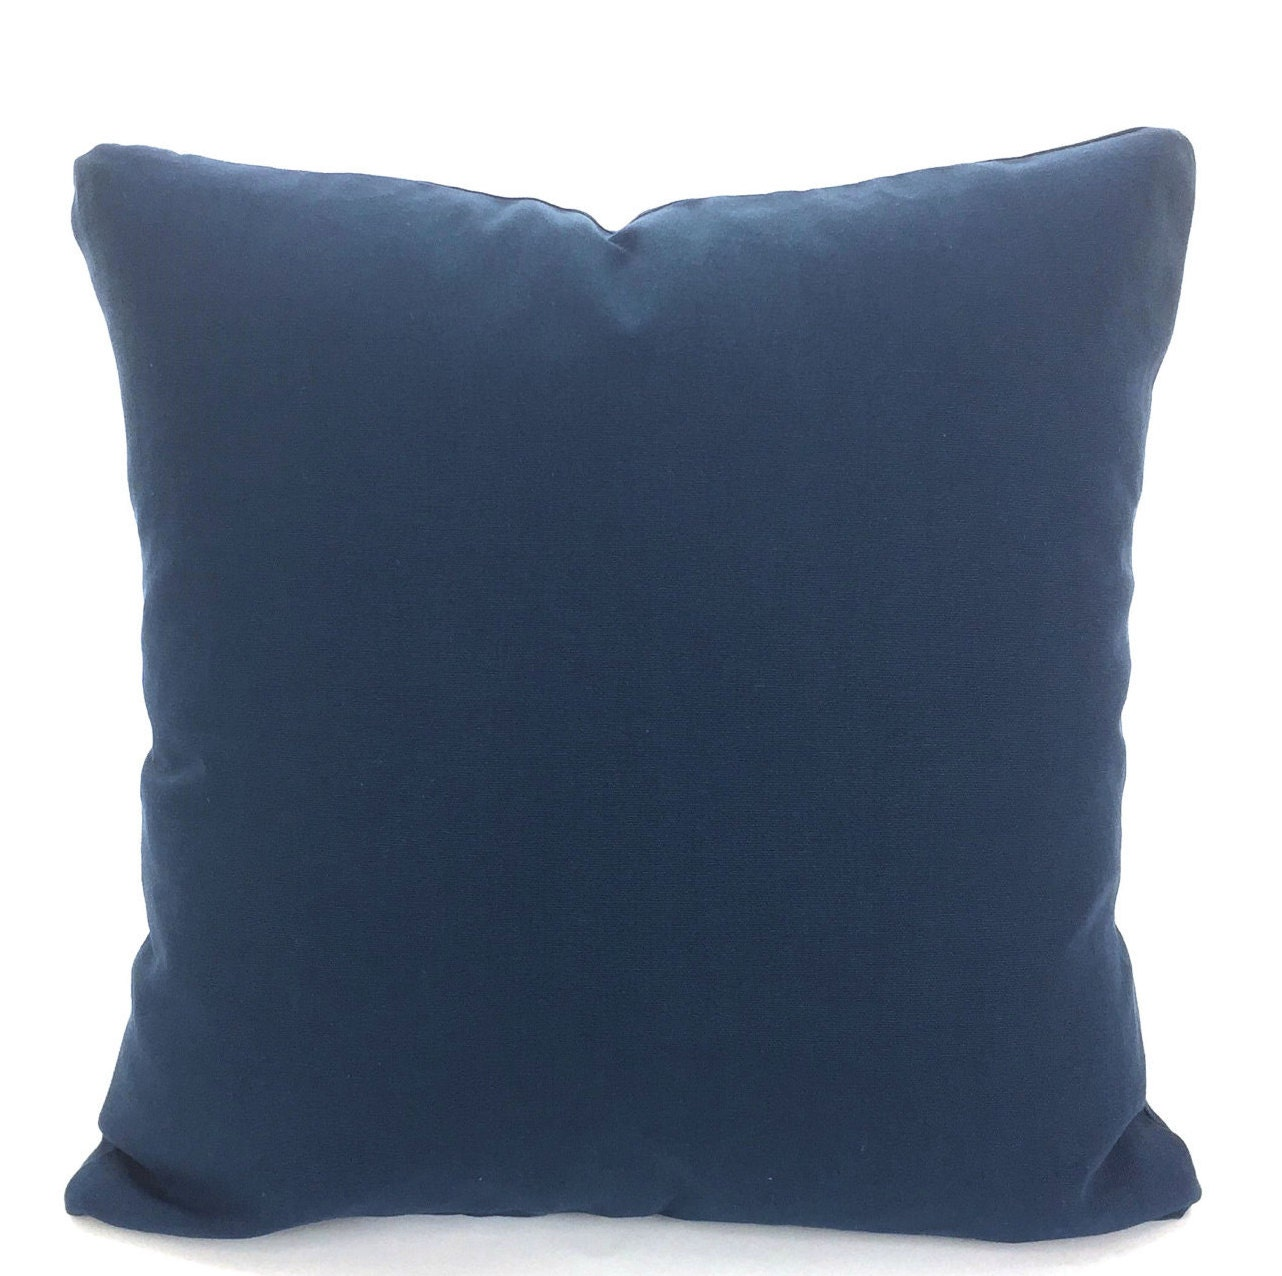 Navy Blue Decorative Pillow Covers : Solid Navy Blue Pillow Covers Decorative Throw Pillows